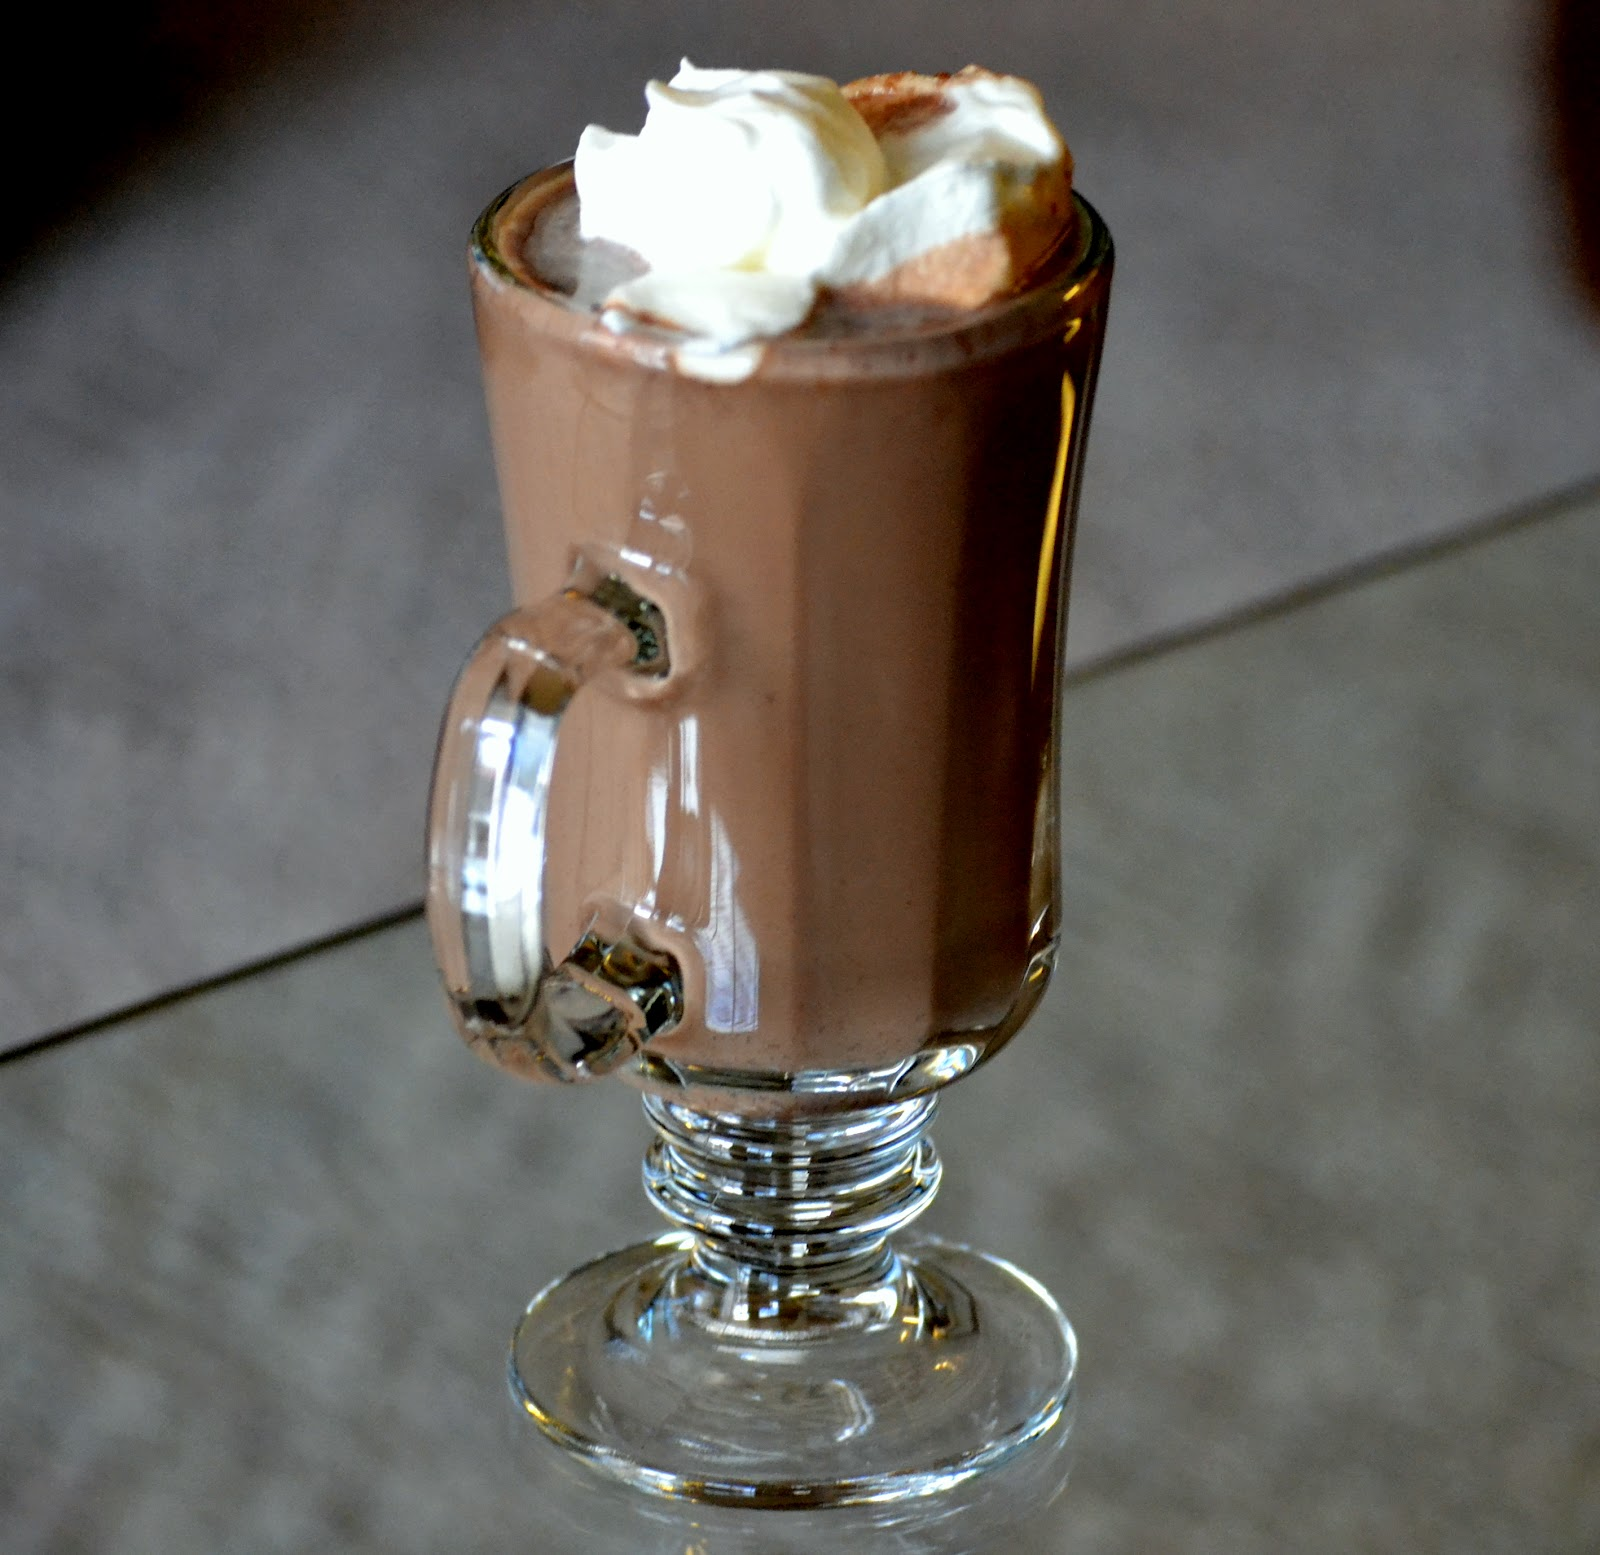 Sweet,Spicy,and Sassy: Not Your Abuelita's Hot Chocolate